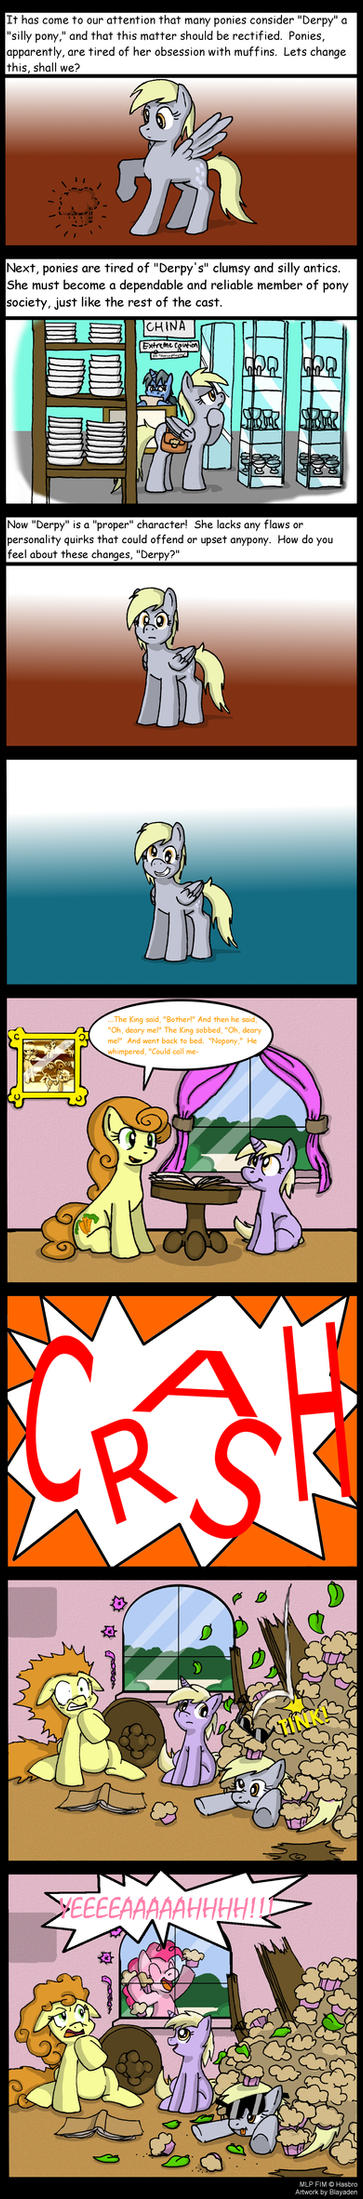 Pony Opinions... by Blayaden